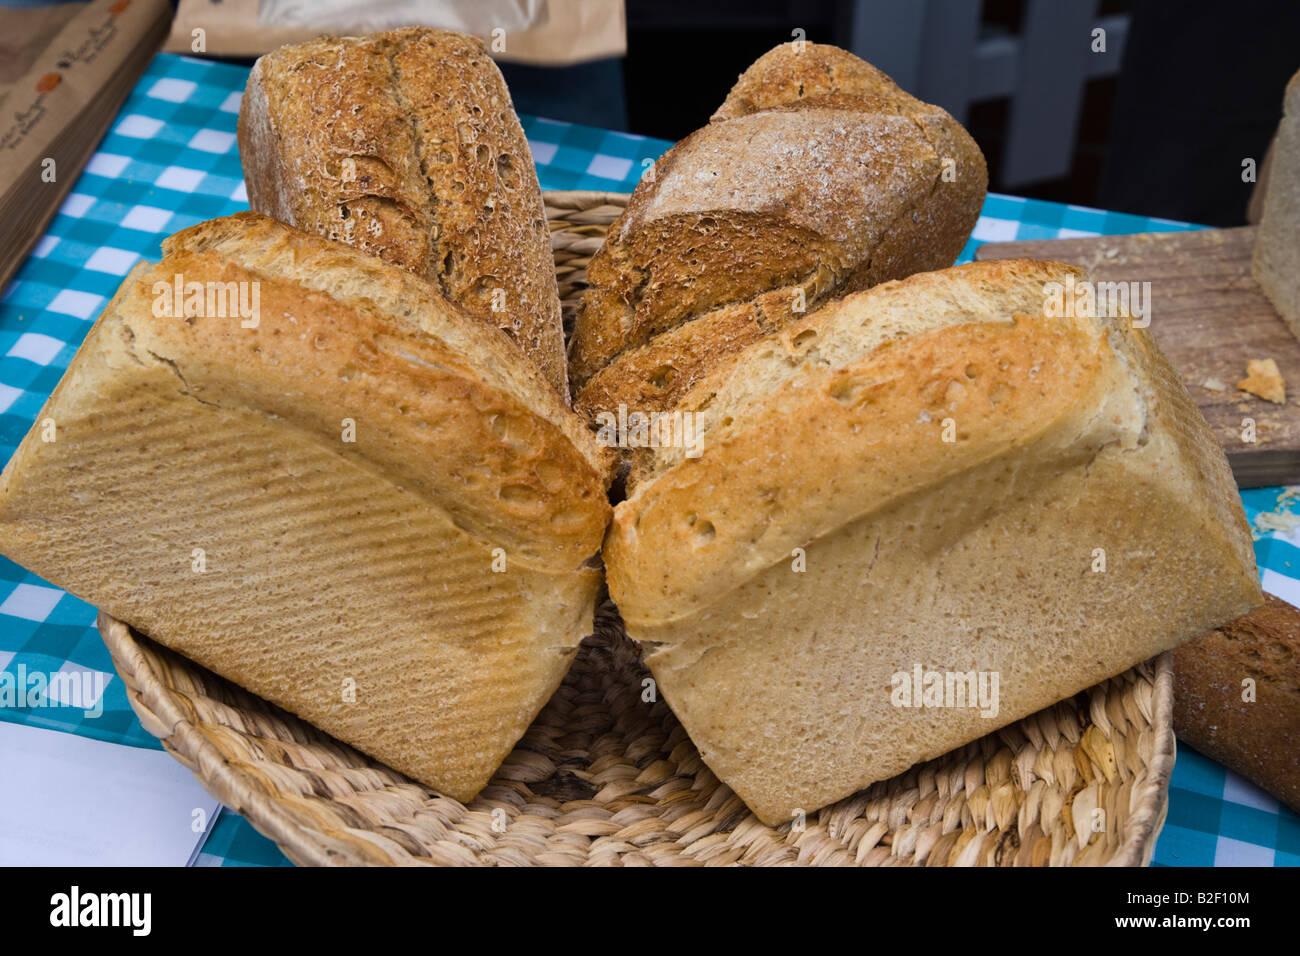 Loaves of white and brown bread - Stock Image